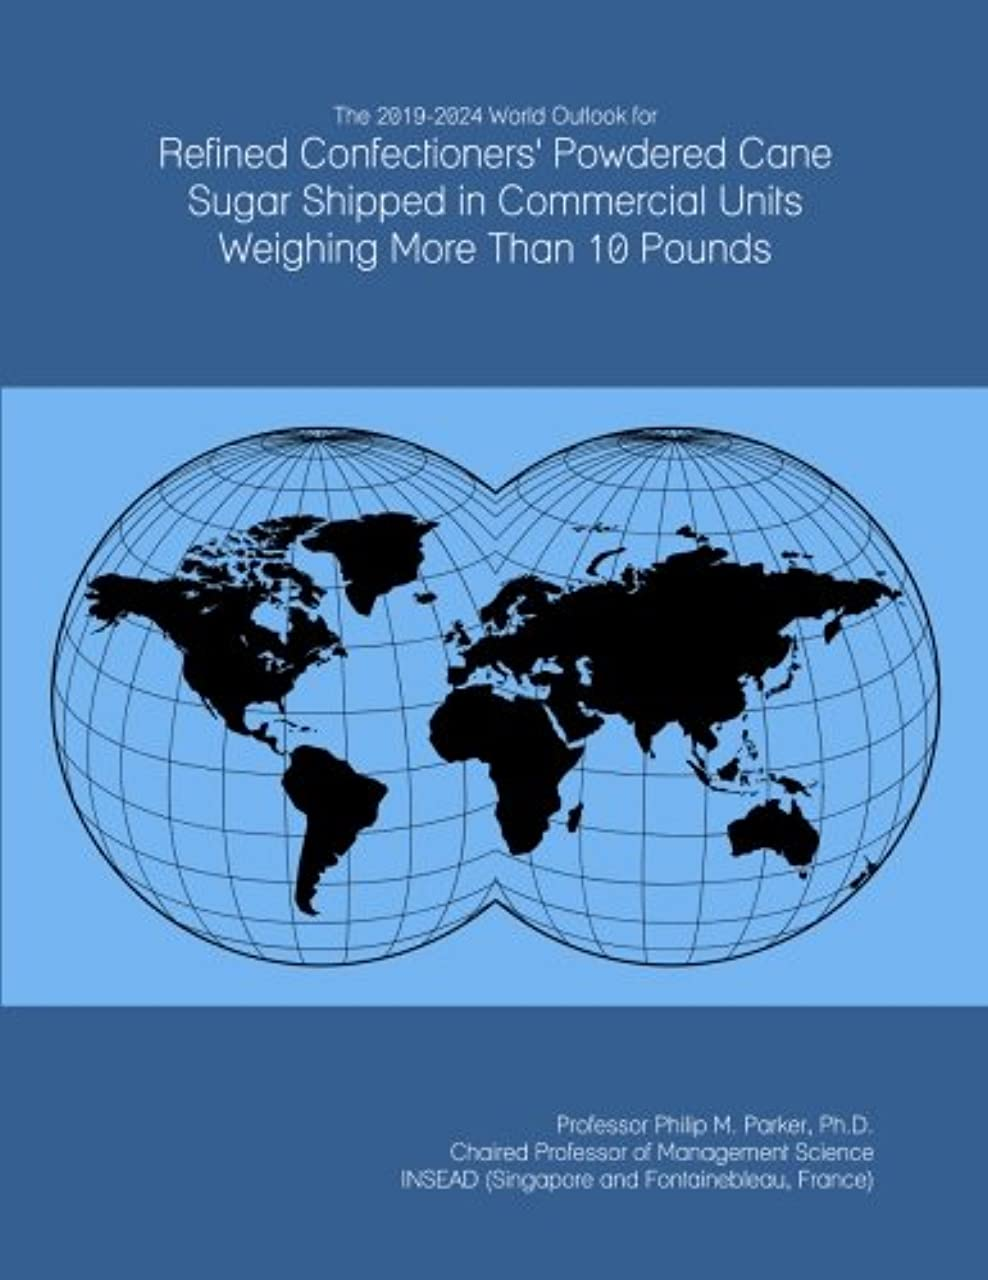 The 2019-2024 World Outlook for Refined Confectioners' Powdered Cane Sugar Shipped in Commercial Units Weighing More Than 10 Pounds